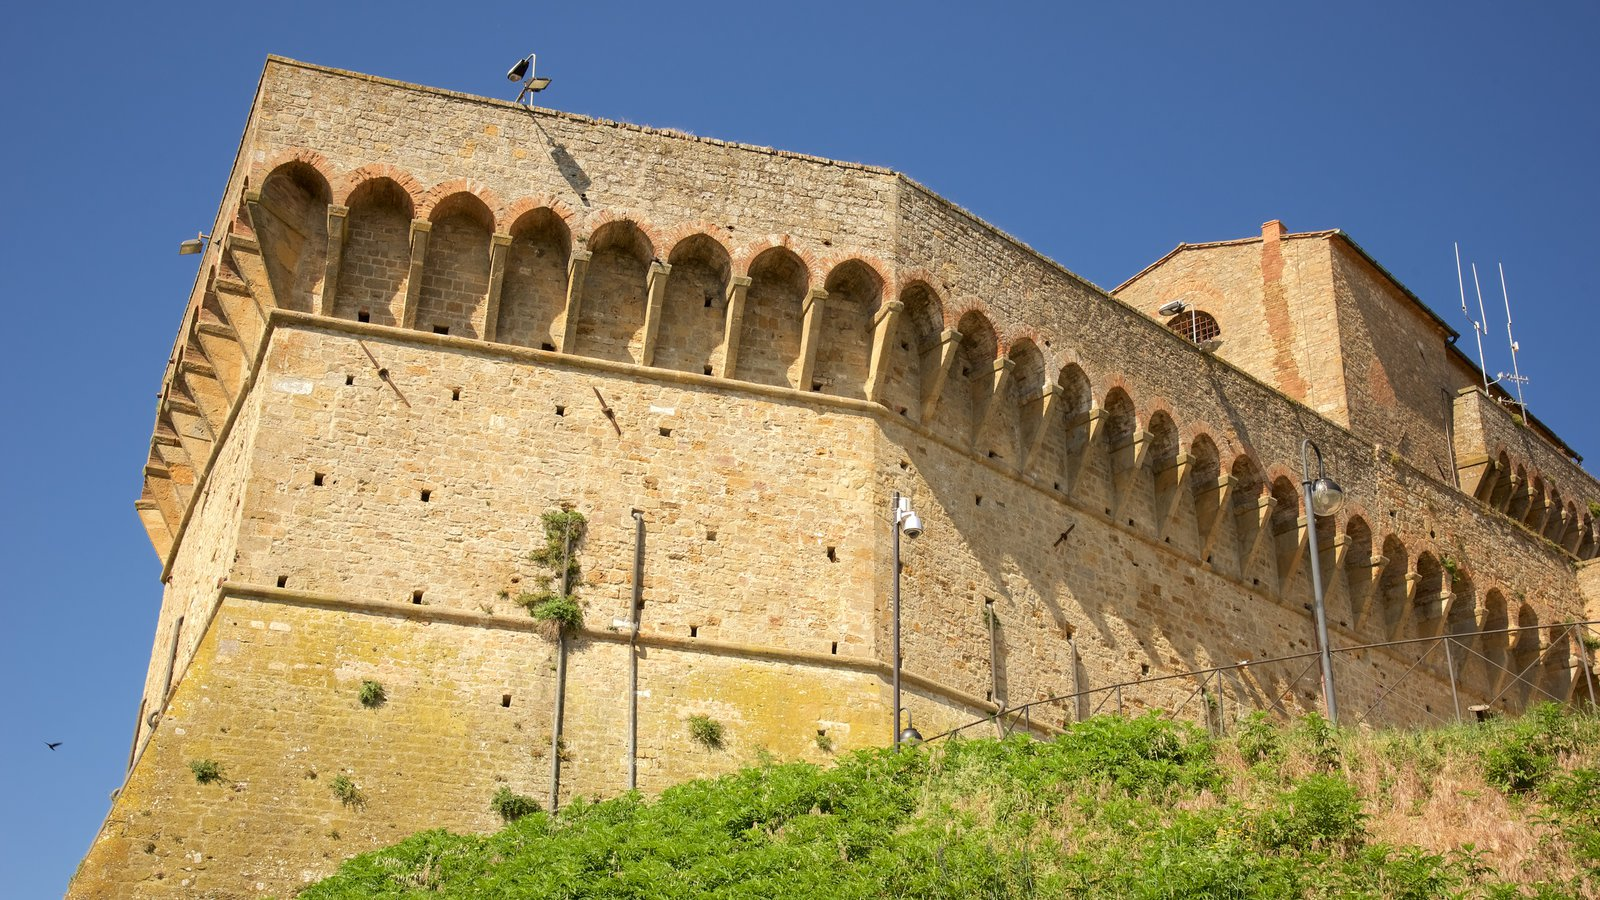 Medici Fortress featuring heritage elements